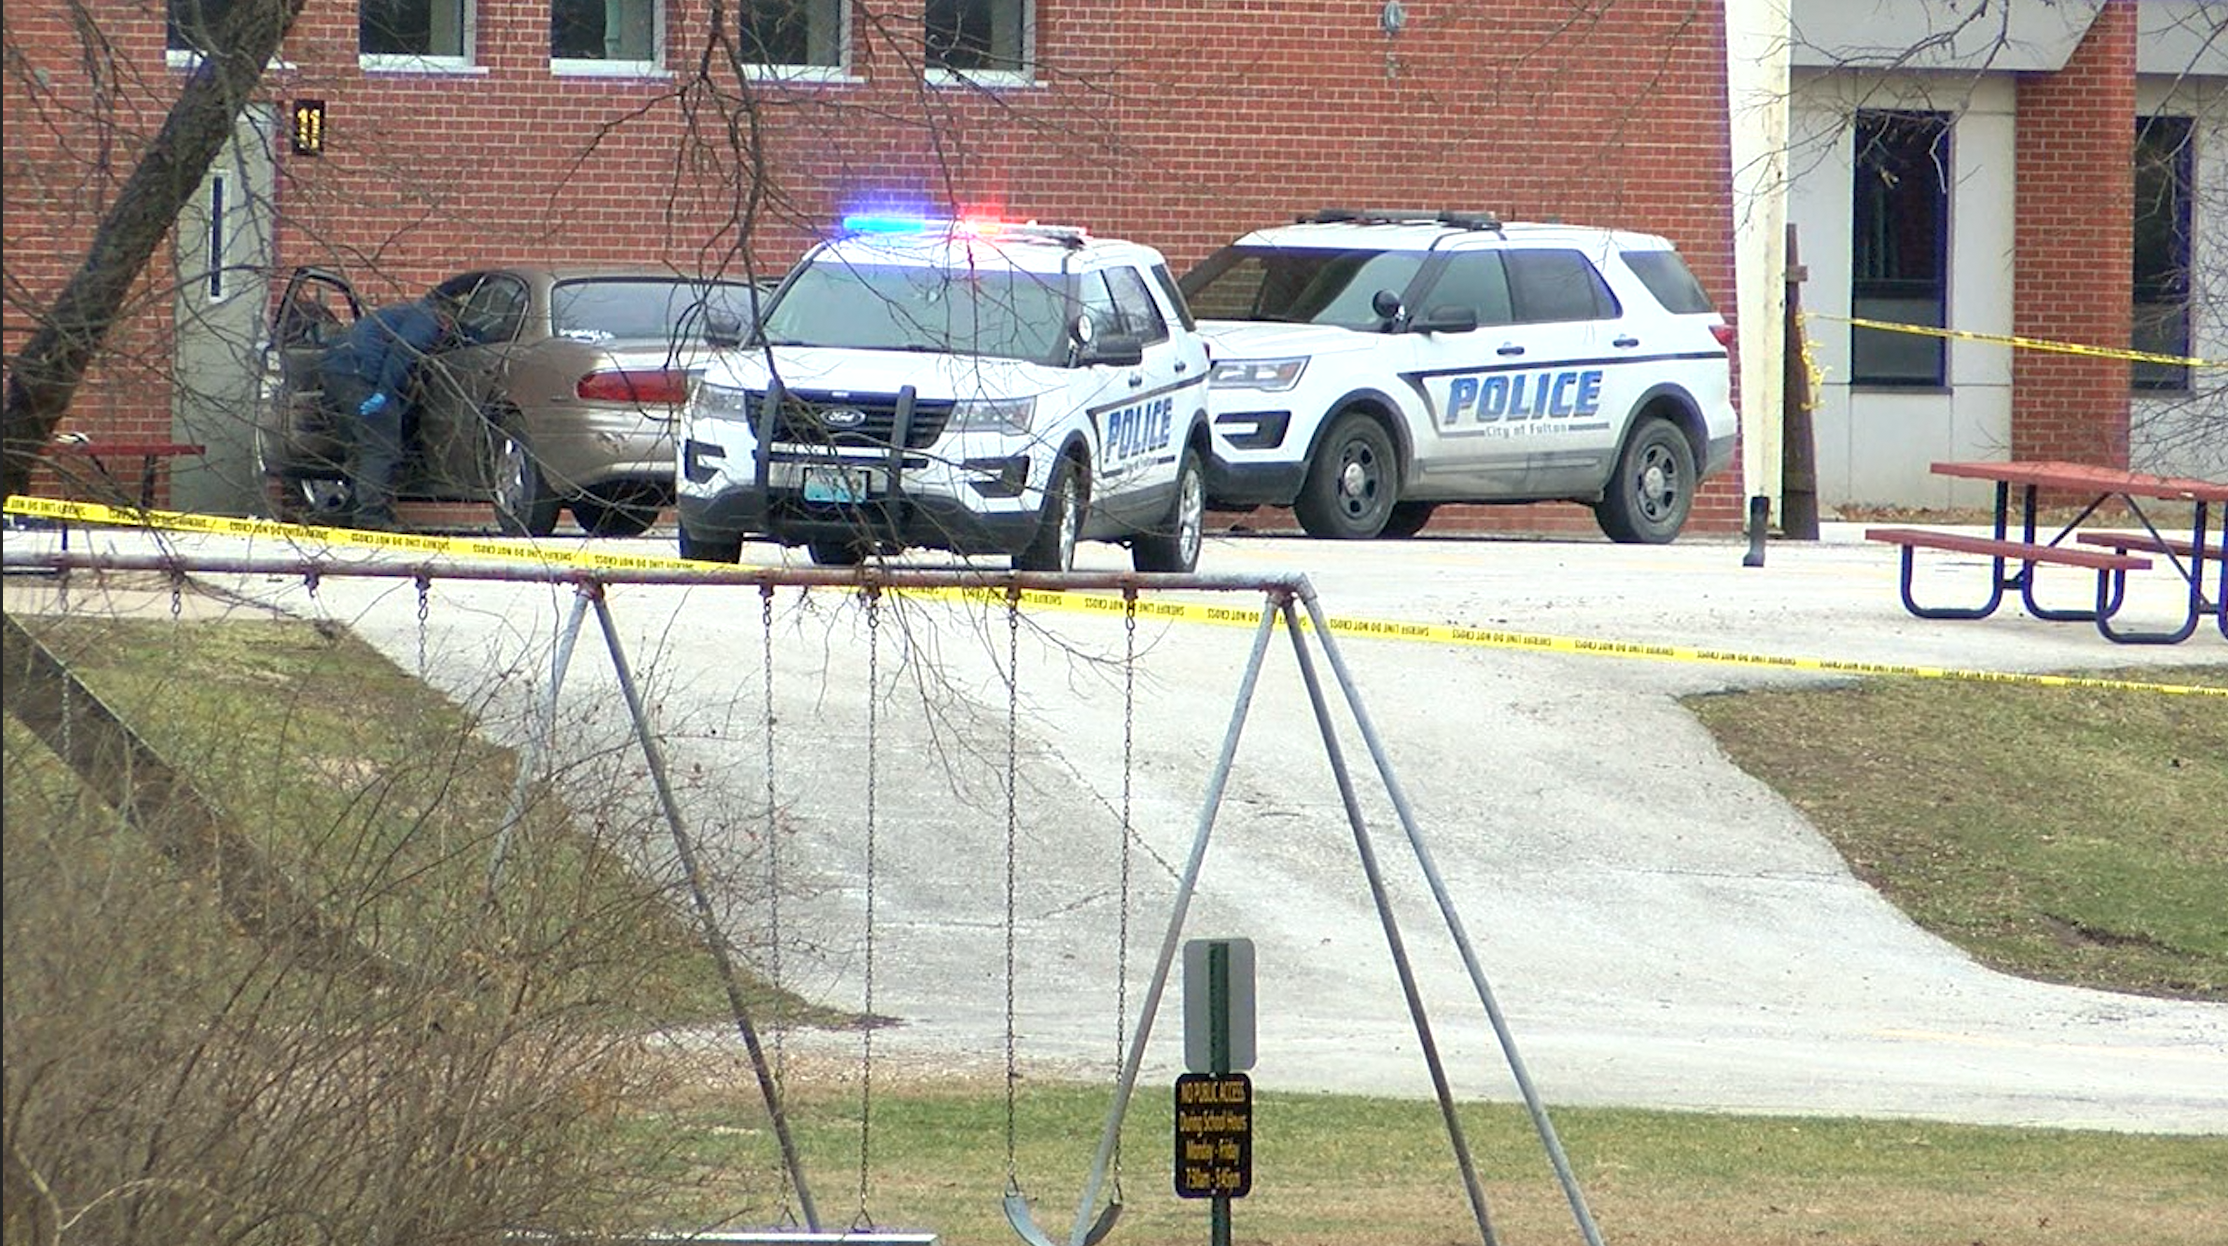 Fulton police investigate the scene of an officer-involved shooting